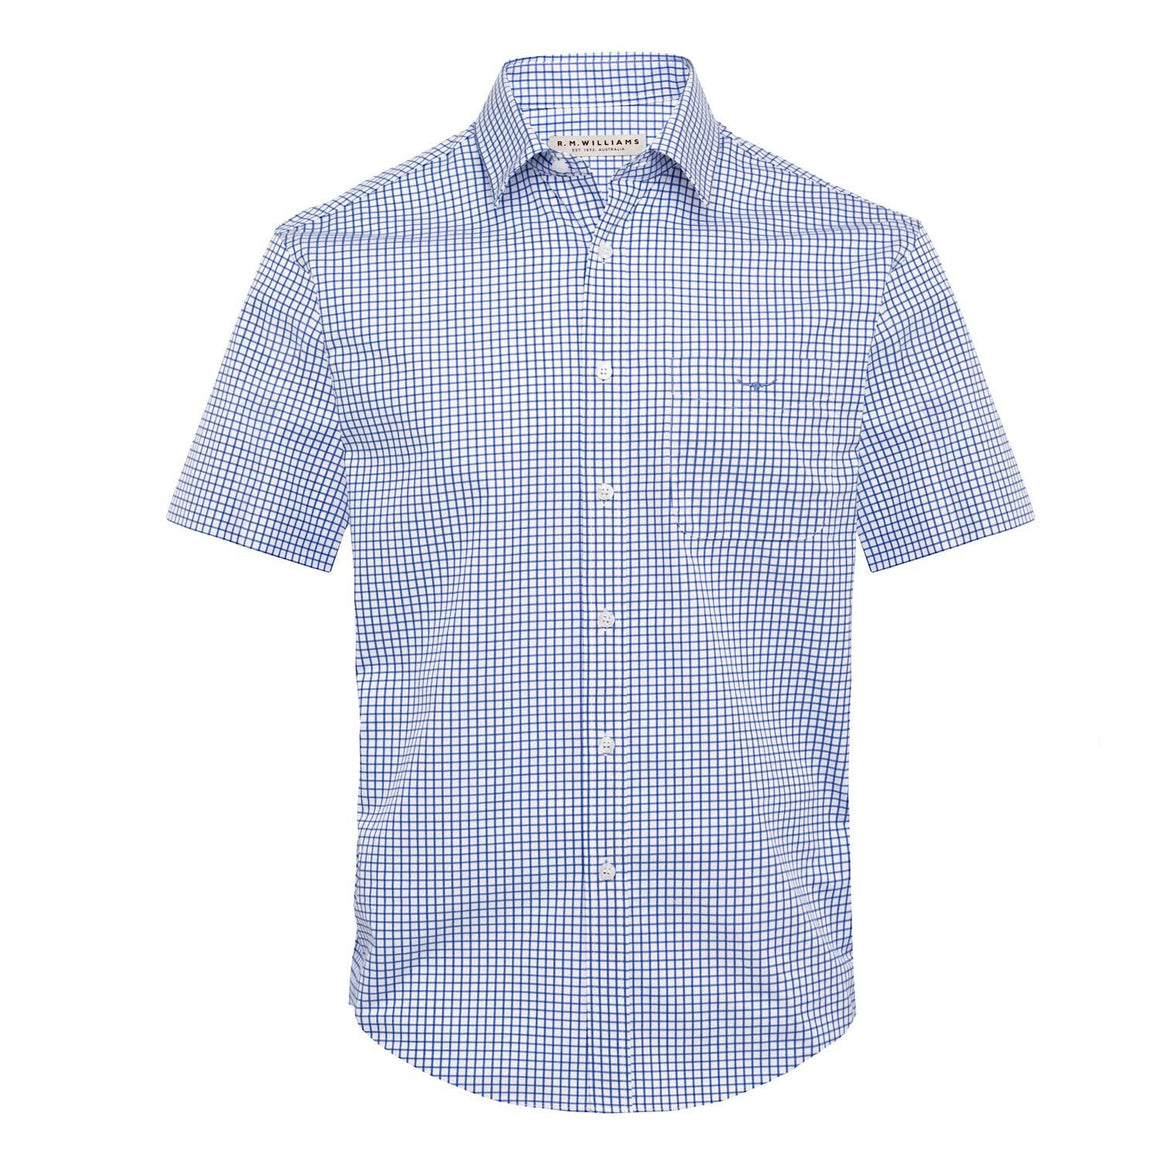 R.M.Williams Hervey Shirt White/Blue Check Regular Fit